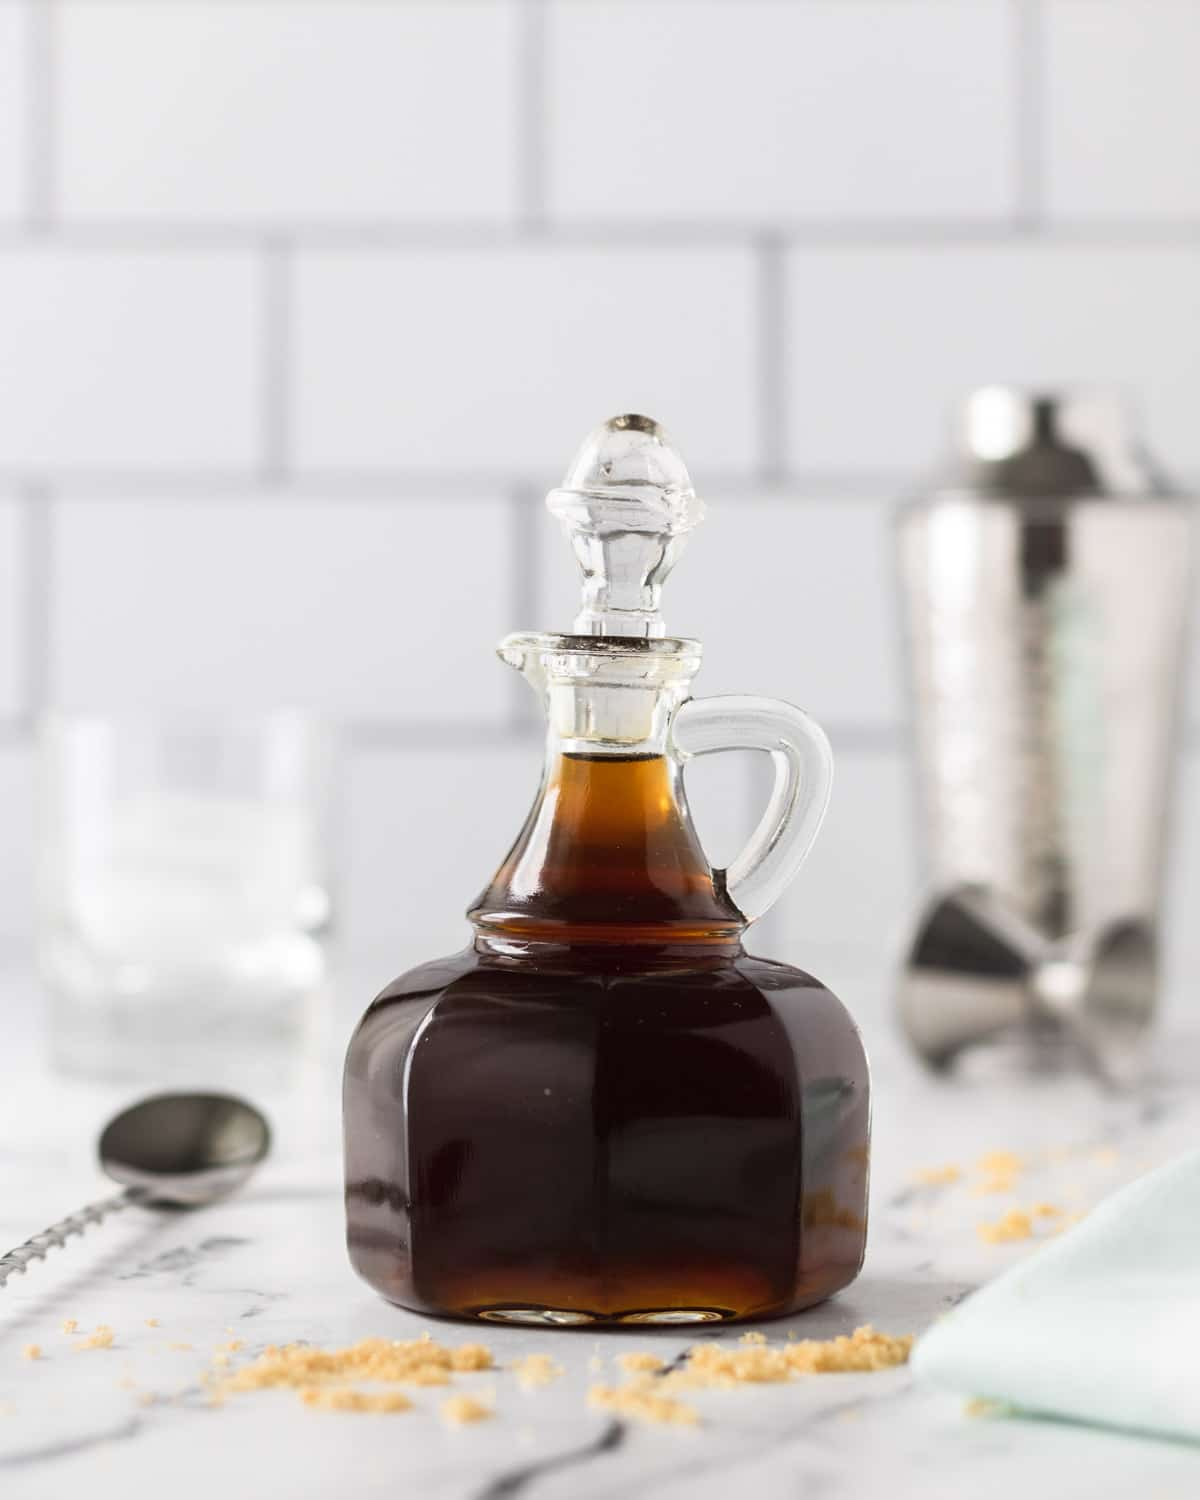 Glass pitcher of brown sugar simple syrup, with cocktail spoon, shaker, and jigger.